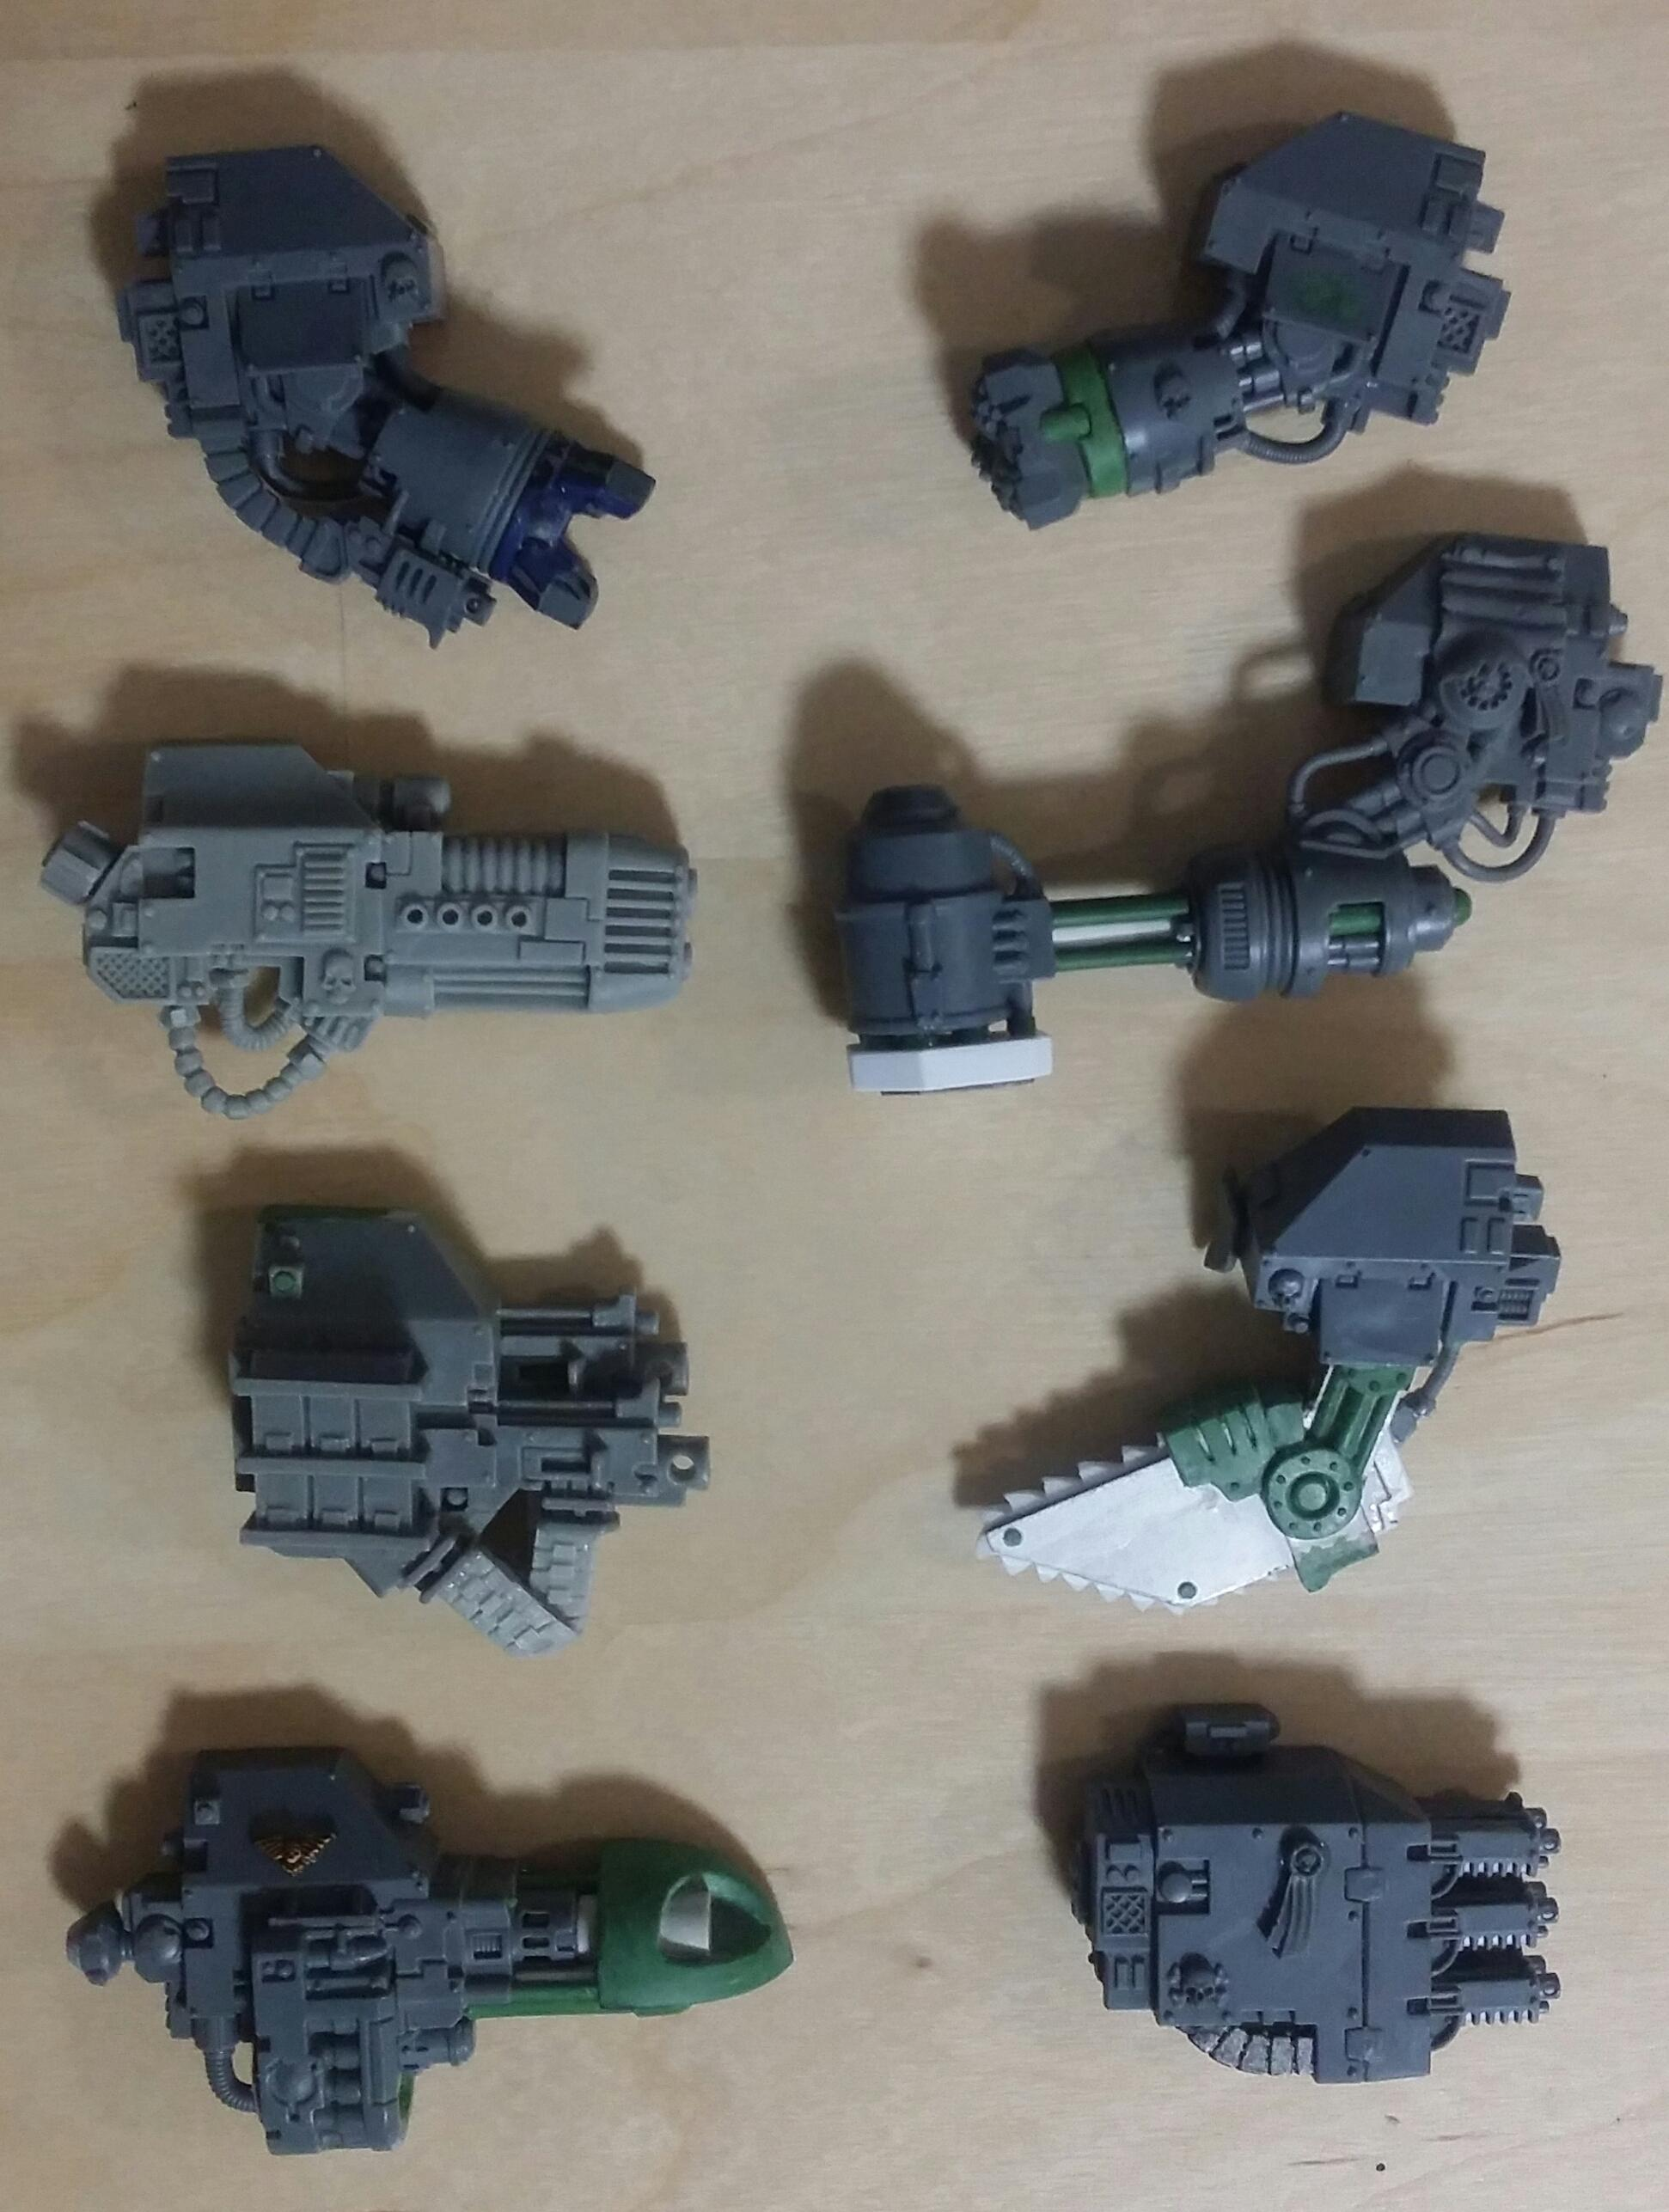 2nd, Ancient, Assault, Bolter, Breaker, Built, Cannon, Chain, Chainblade, Chainfist, Chainsword, Clad, Close Combat Weapon, Company, Conversion, Cordero, Custom, Cybot, Dreadnought, Drill, Hammer, Heavy, Heresy, Hk, Hunter, Hunter-killer, Iron, Ironclad, Killer, Launcher, Legion, Meltagun, Melter, Missile, Mkiii, Power Fist, Rogue, Rogue Trader, Sarcophagus, Scratch, Scratch Build, Seismic, Seismic Hammer, Siege, Siegebreaker, Space, Space Marines, Spitfury, Support, Thouras, Trader, Venerable, Weapon